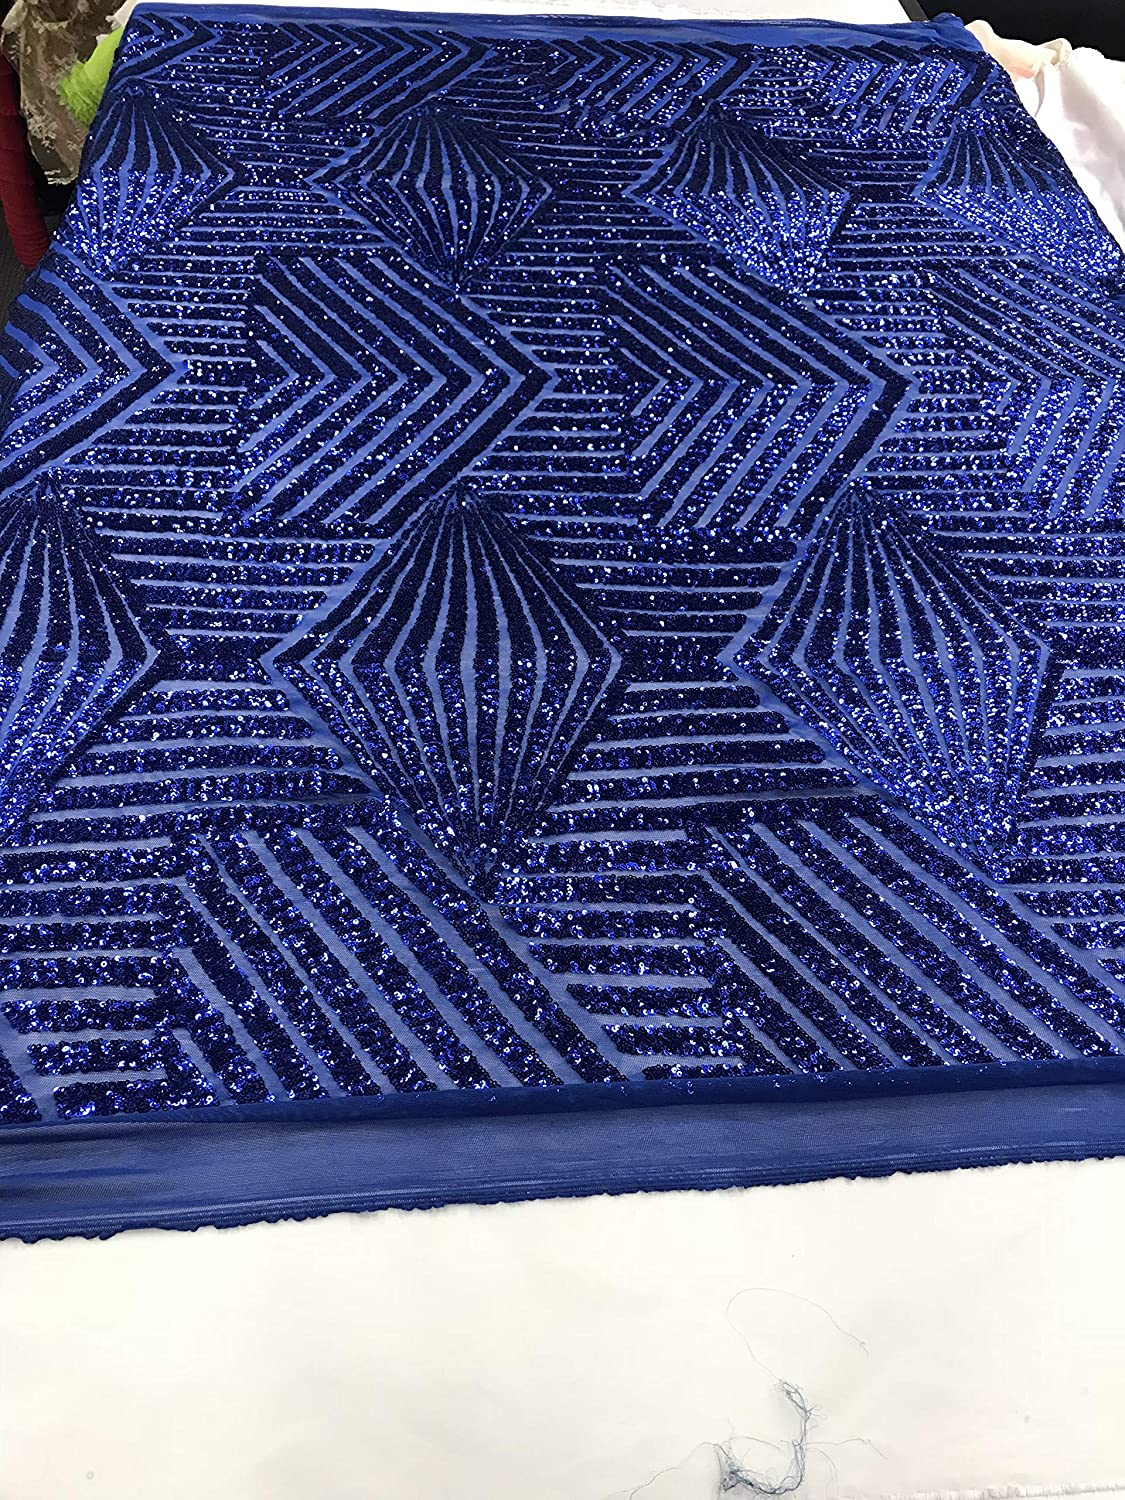 Royal 売買 Blue Fabric Shiny Sequins 現品 4 Way on A Stretch Sol lace MESH